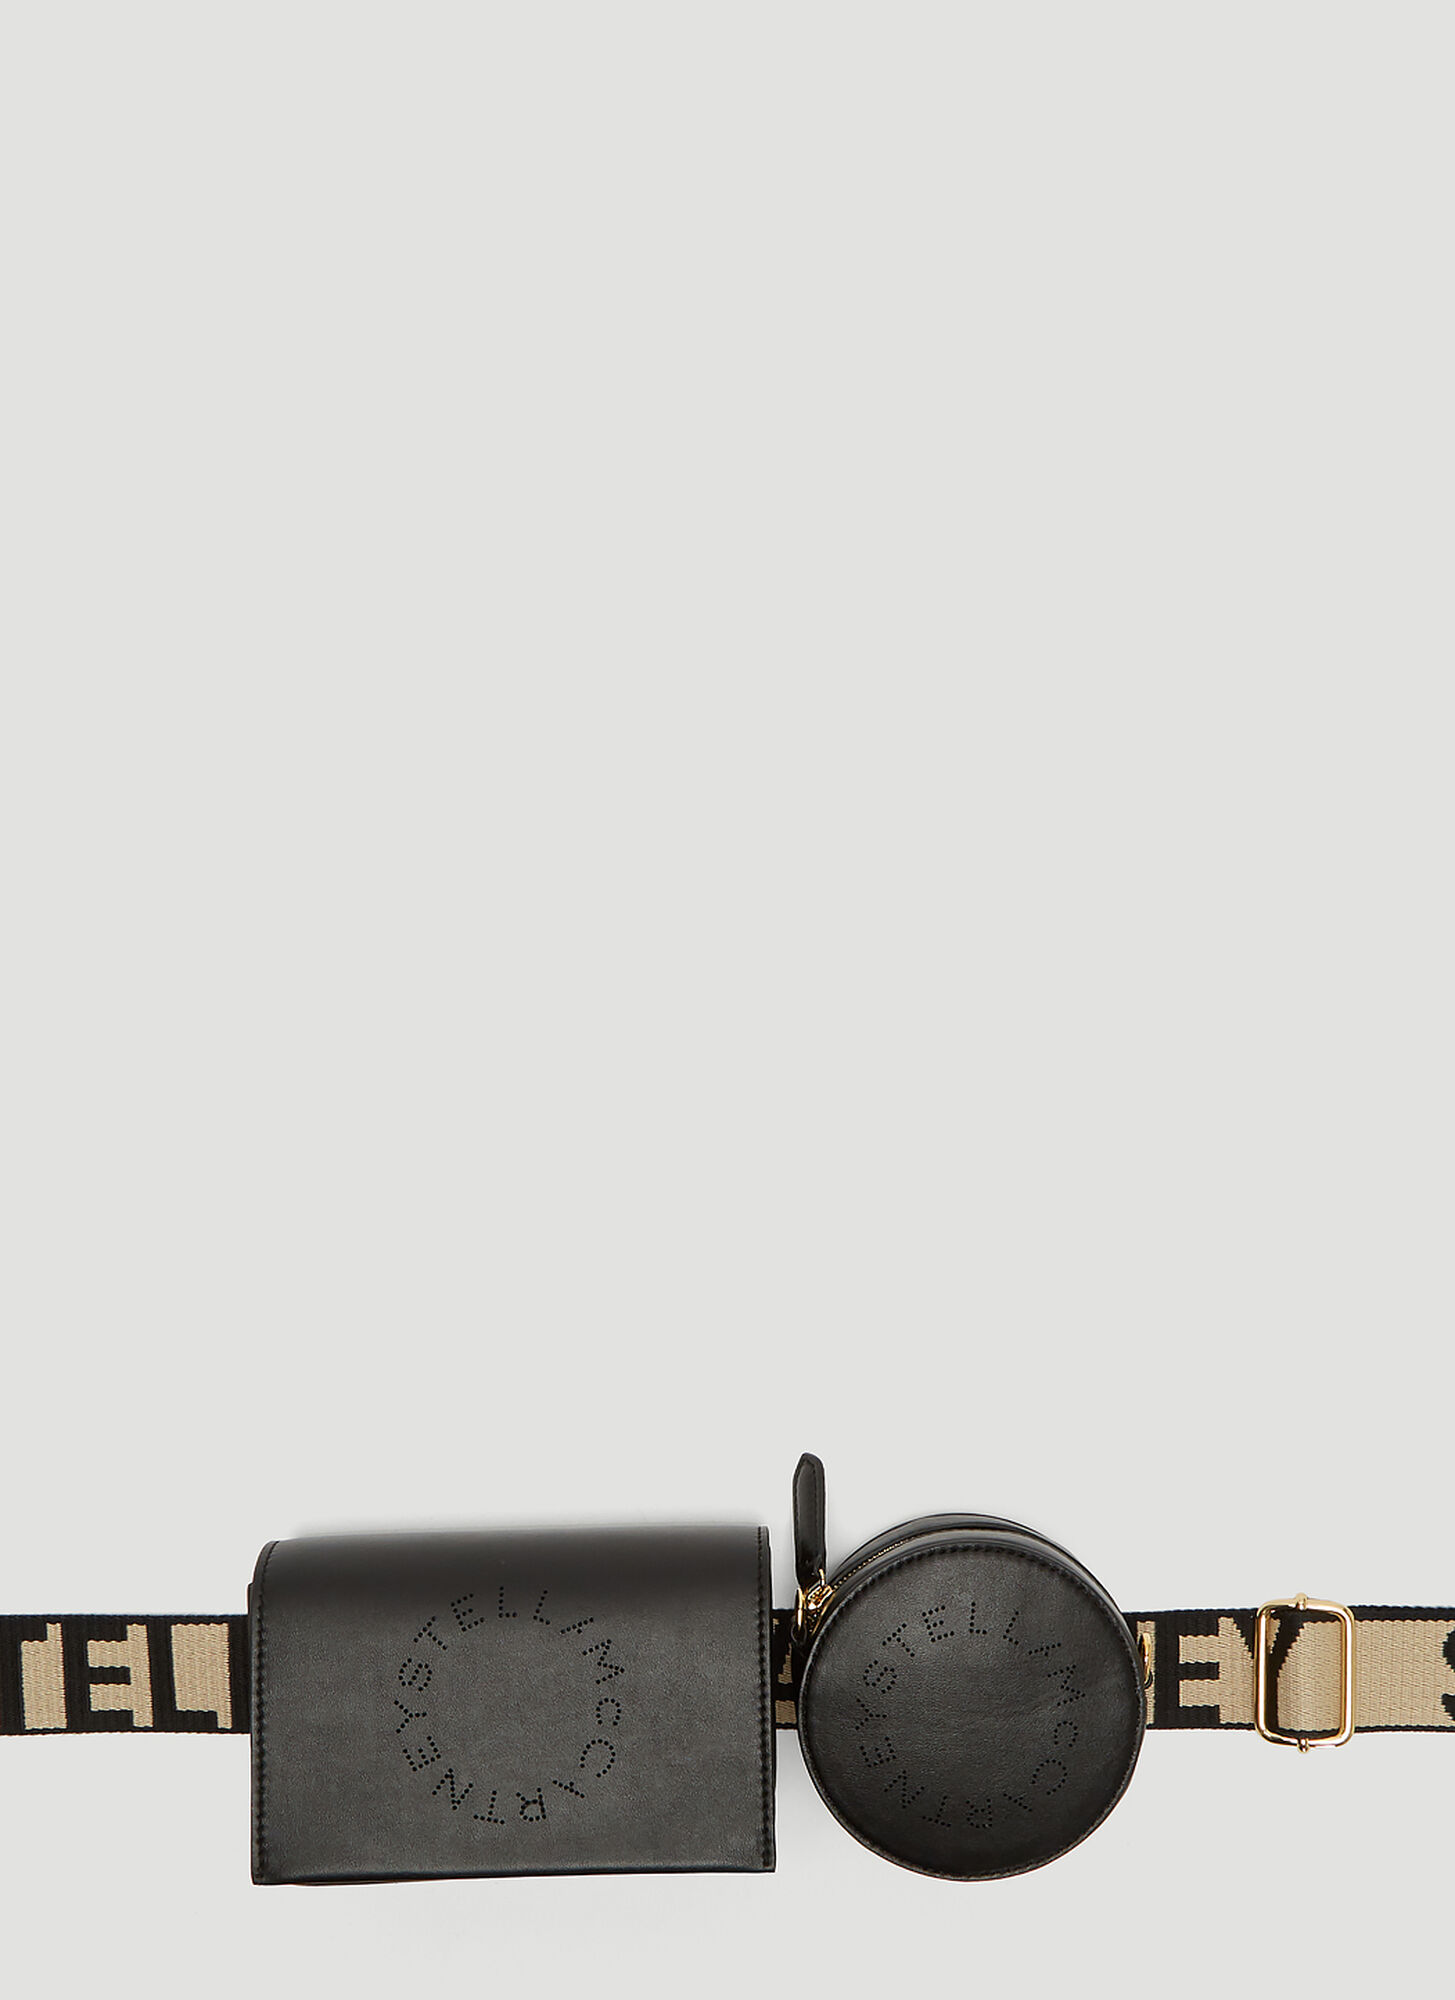 Stella McCartney Faux-Leather Utility Belt Bag in Black